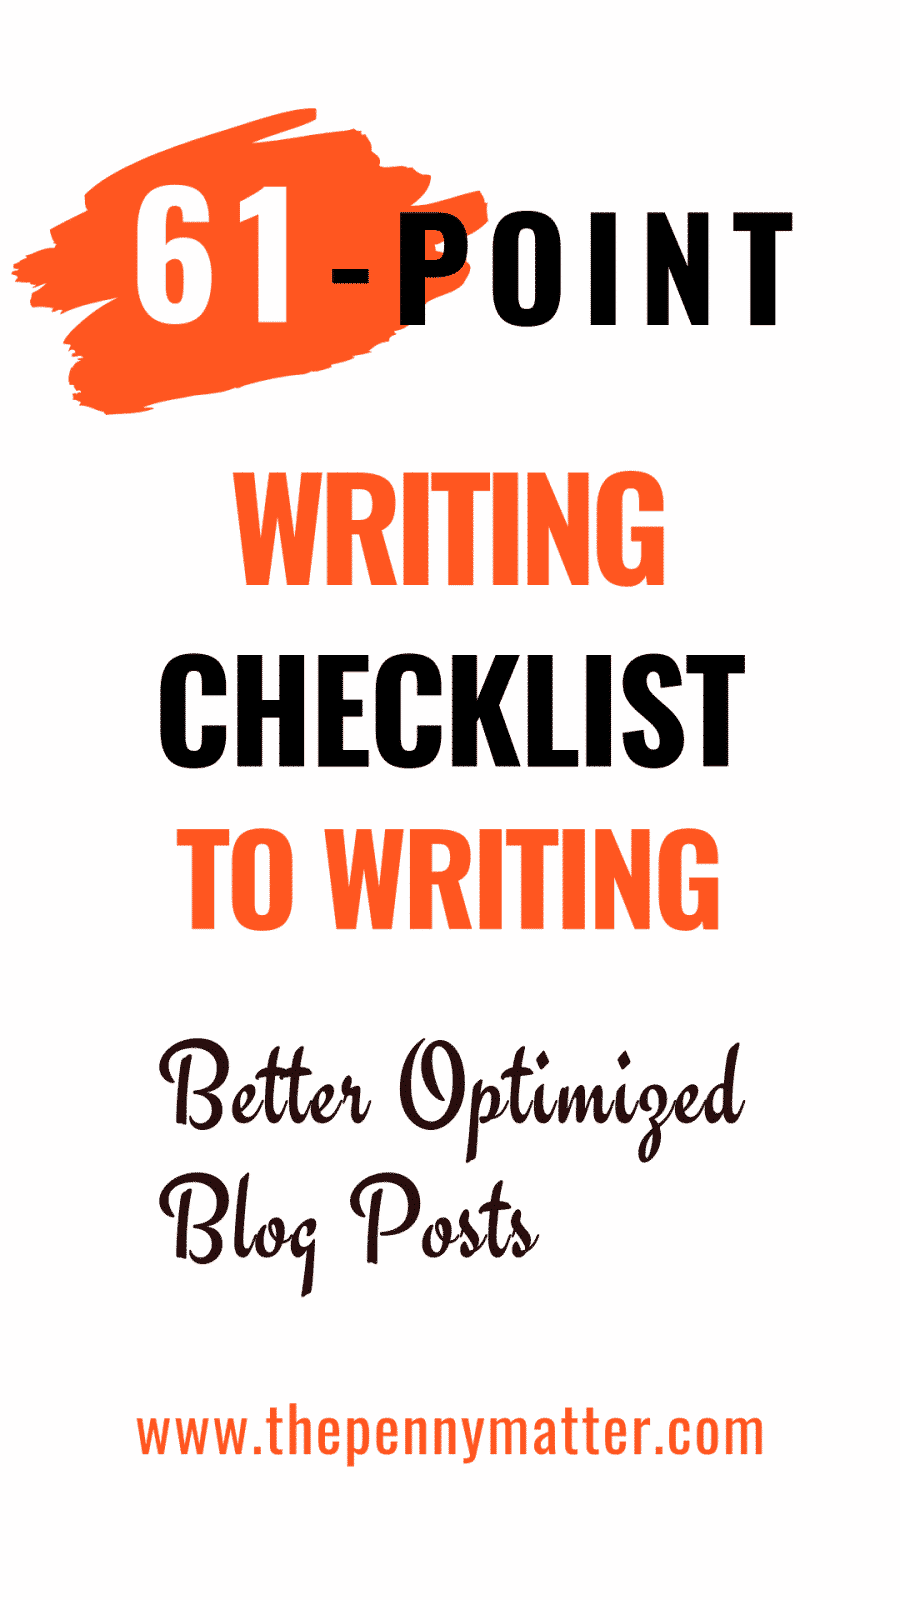 61-Point Writing Checklist for Optimizing Blog Posts